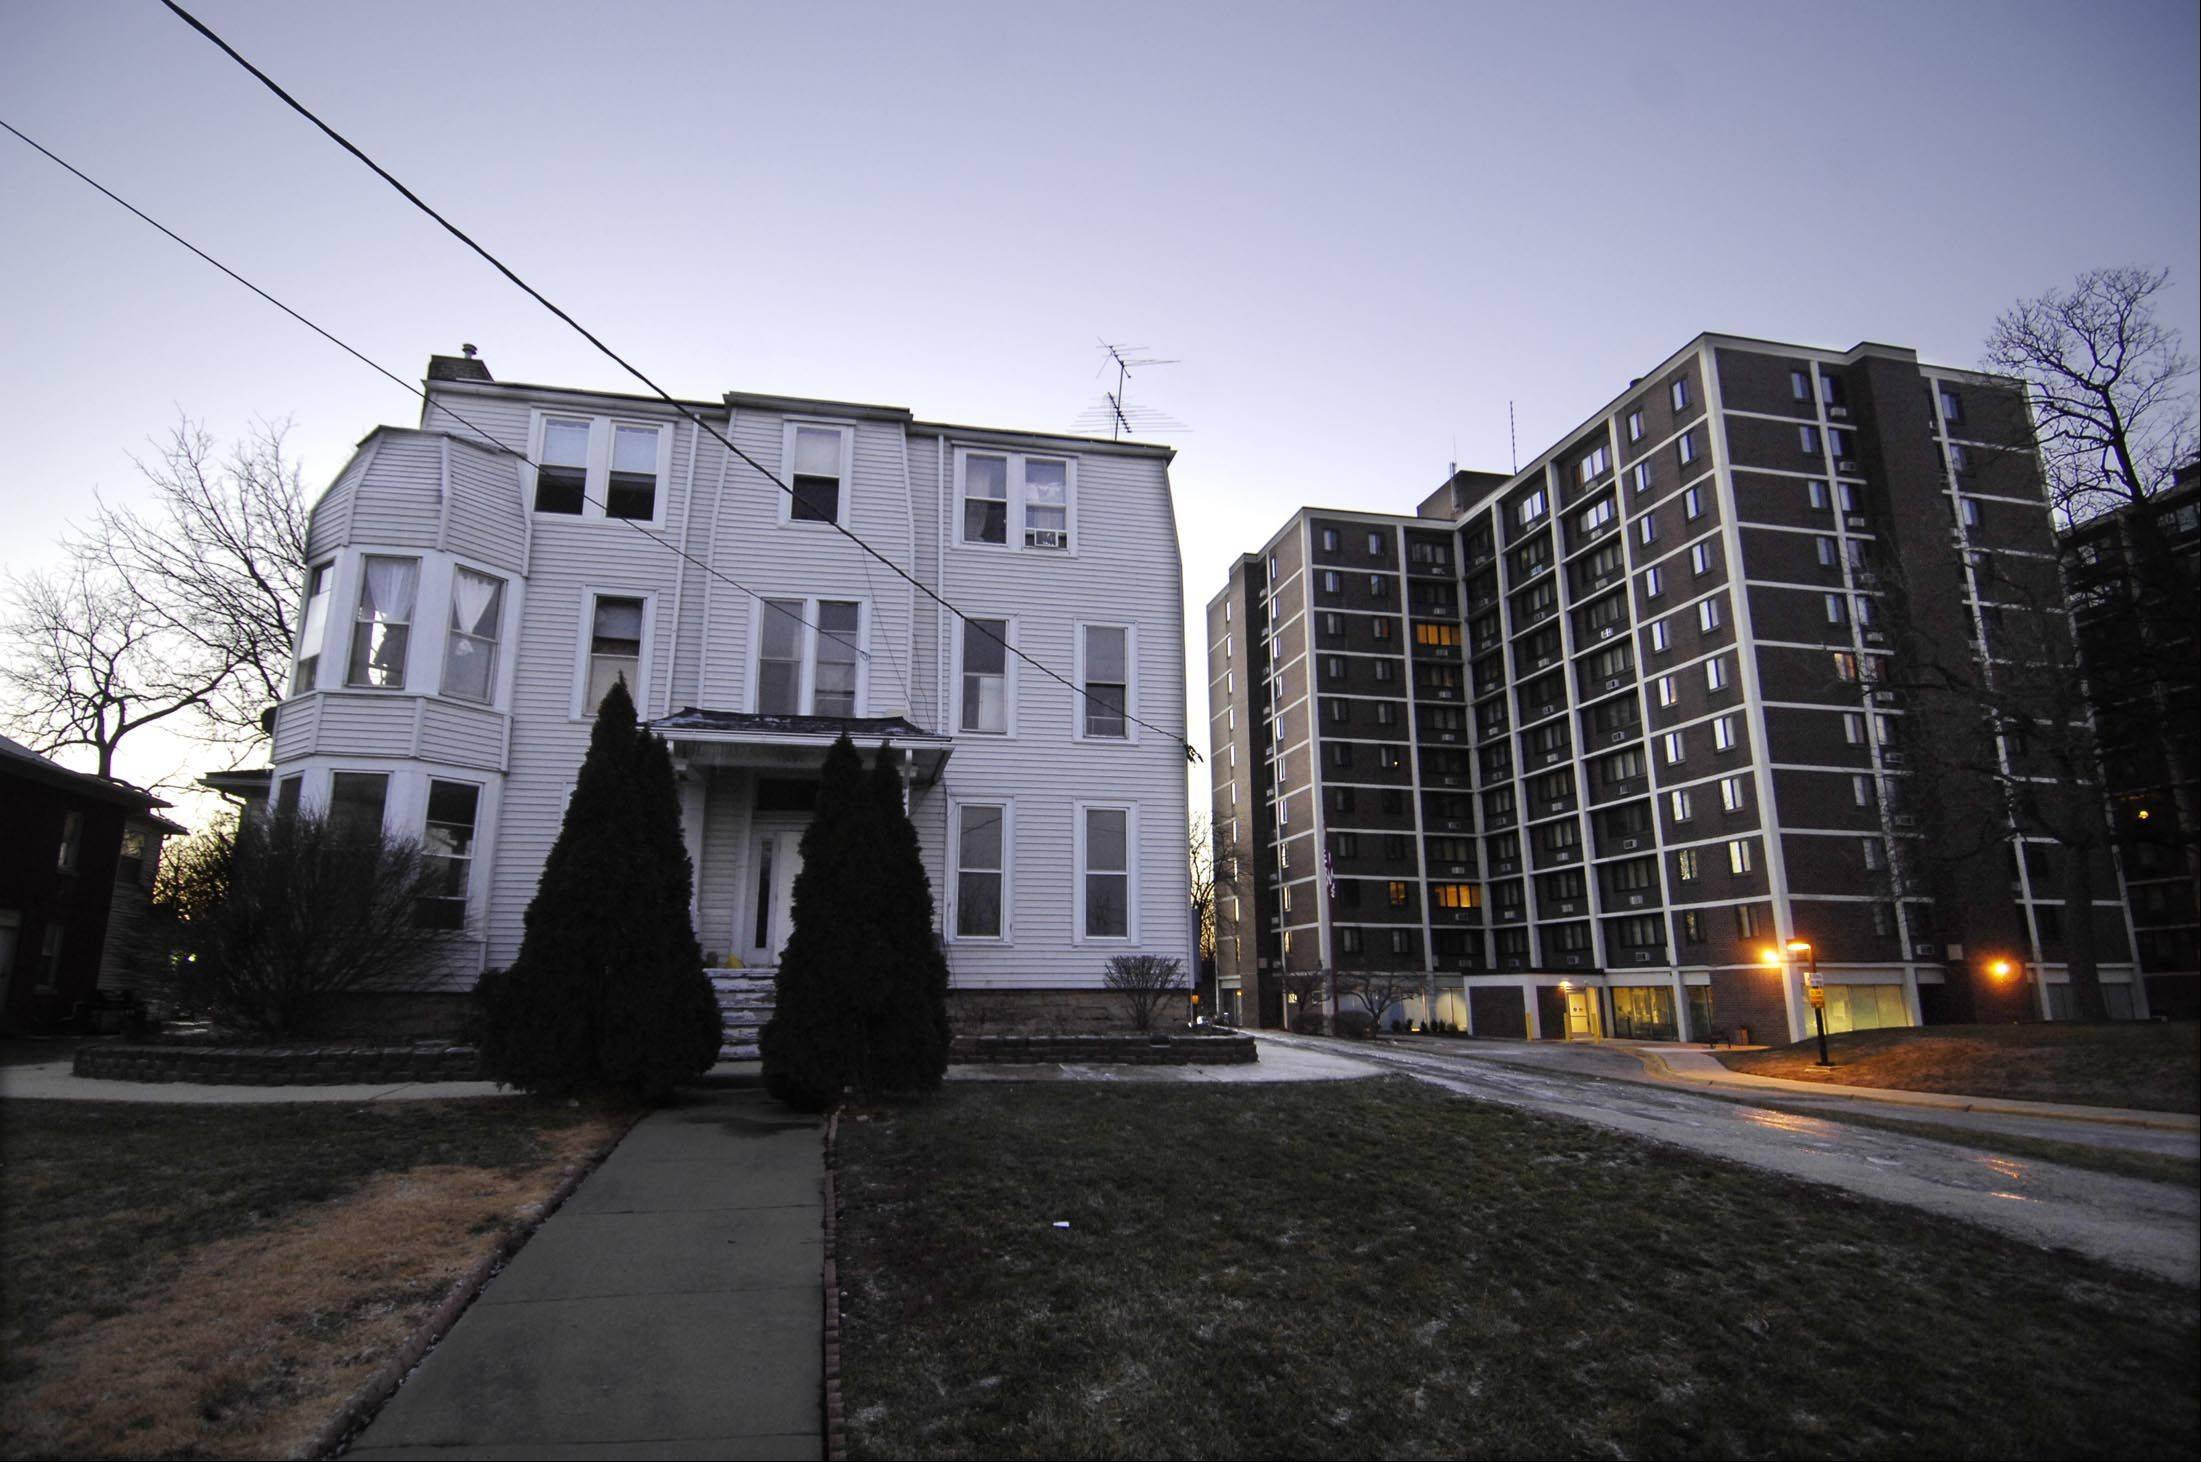 The Housing Authority of Elgin plans to rehab Central Park Towers at 120 State St., and build a new mid-rise building next door.